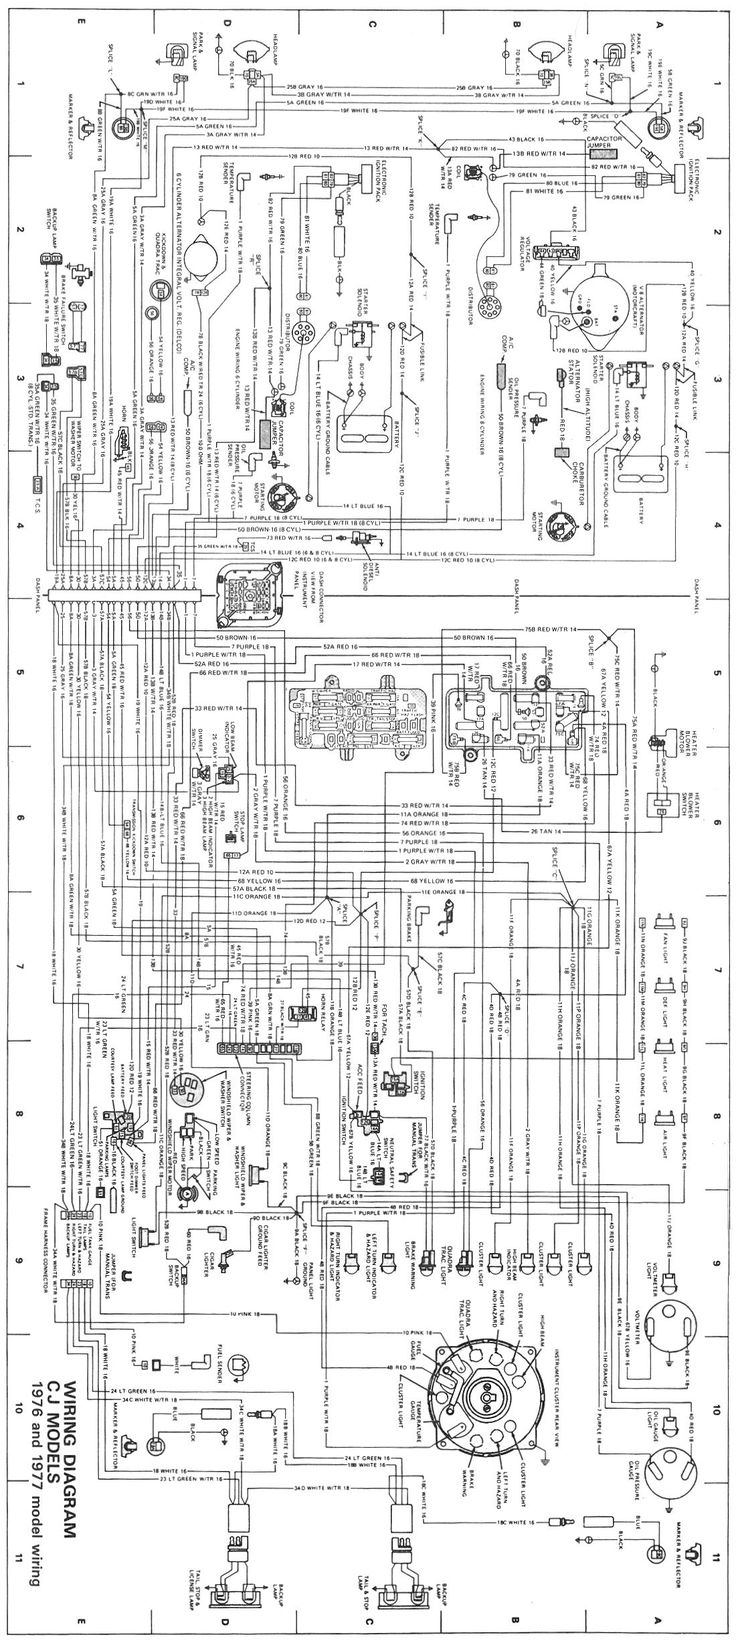 8d25ded6e3673519e155875e09844e5e jeep cj jeep stuff 109 best jeep stuff to buy build images on pinterest jeep stuff m715 wiring diagram at soozxer.org